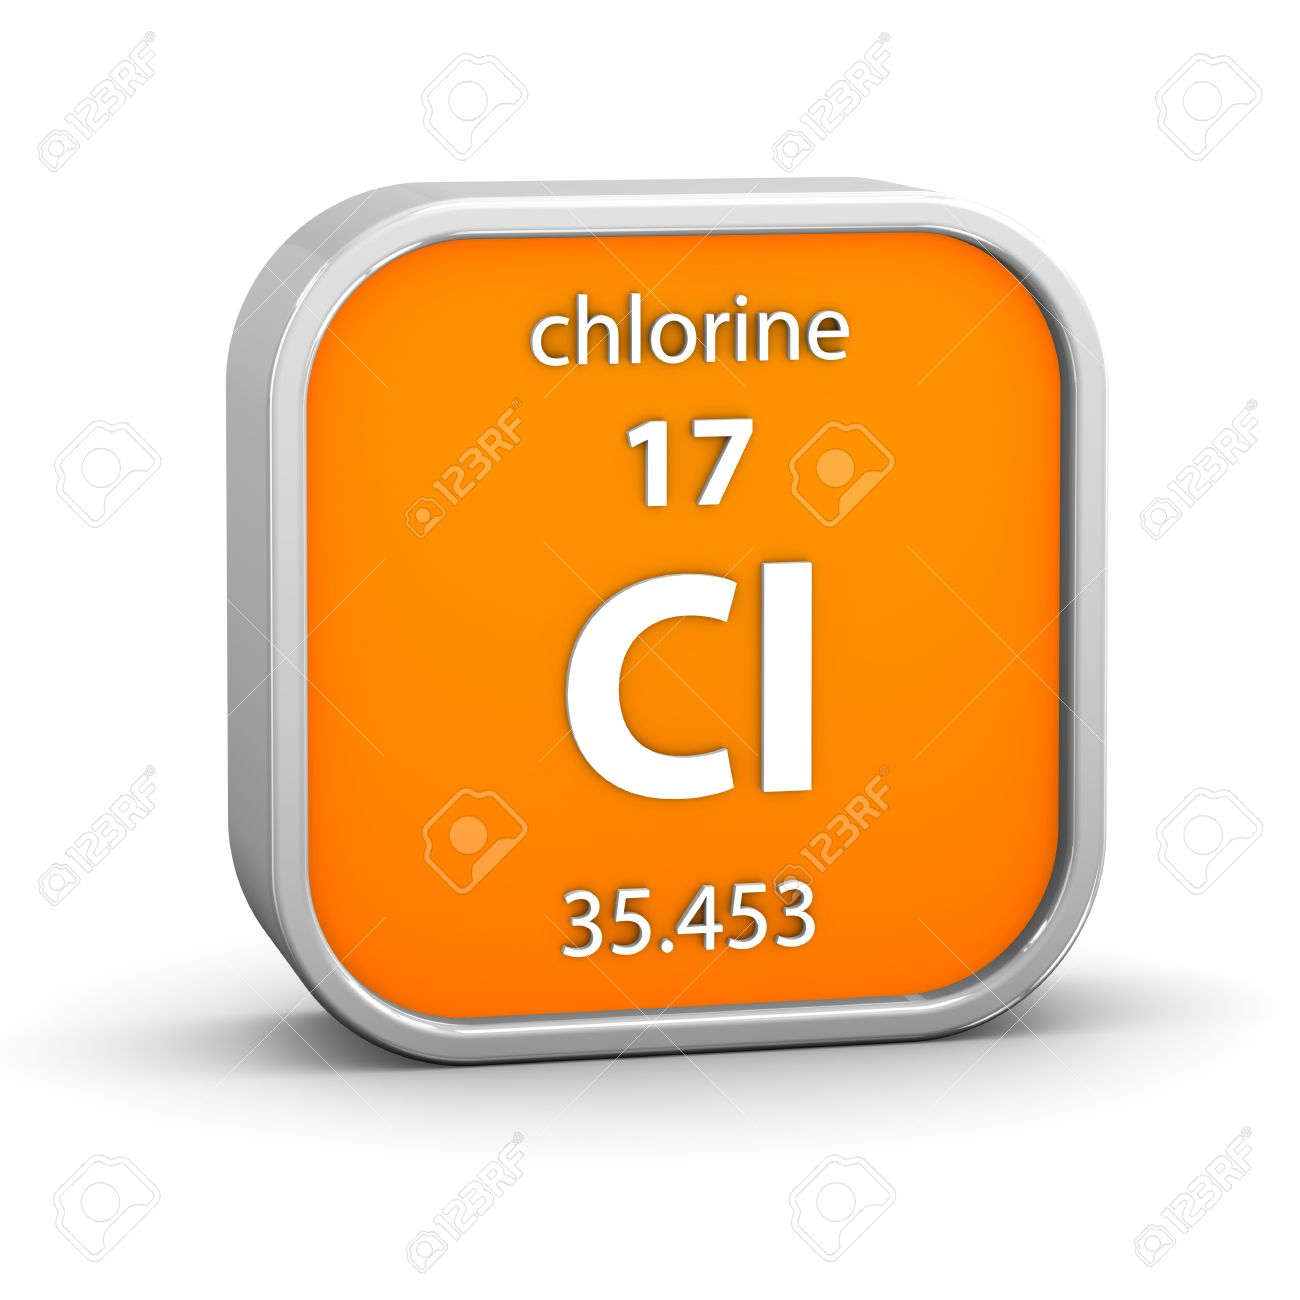 Chlorine material on the periodic table part of a series stock photo chlorine material on the periodic table part of a series stock photo 17963775 urtaz Gallery